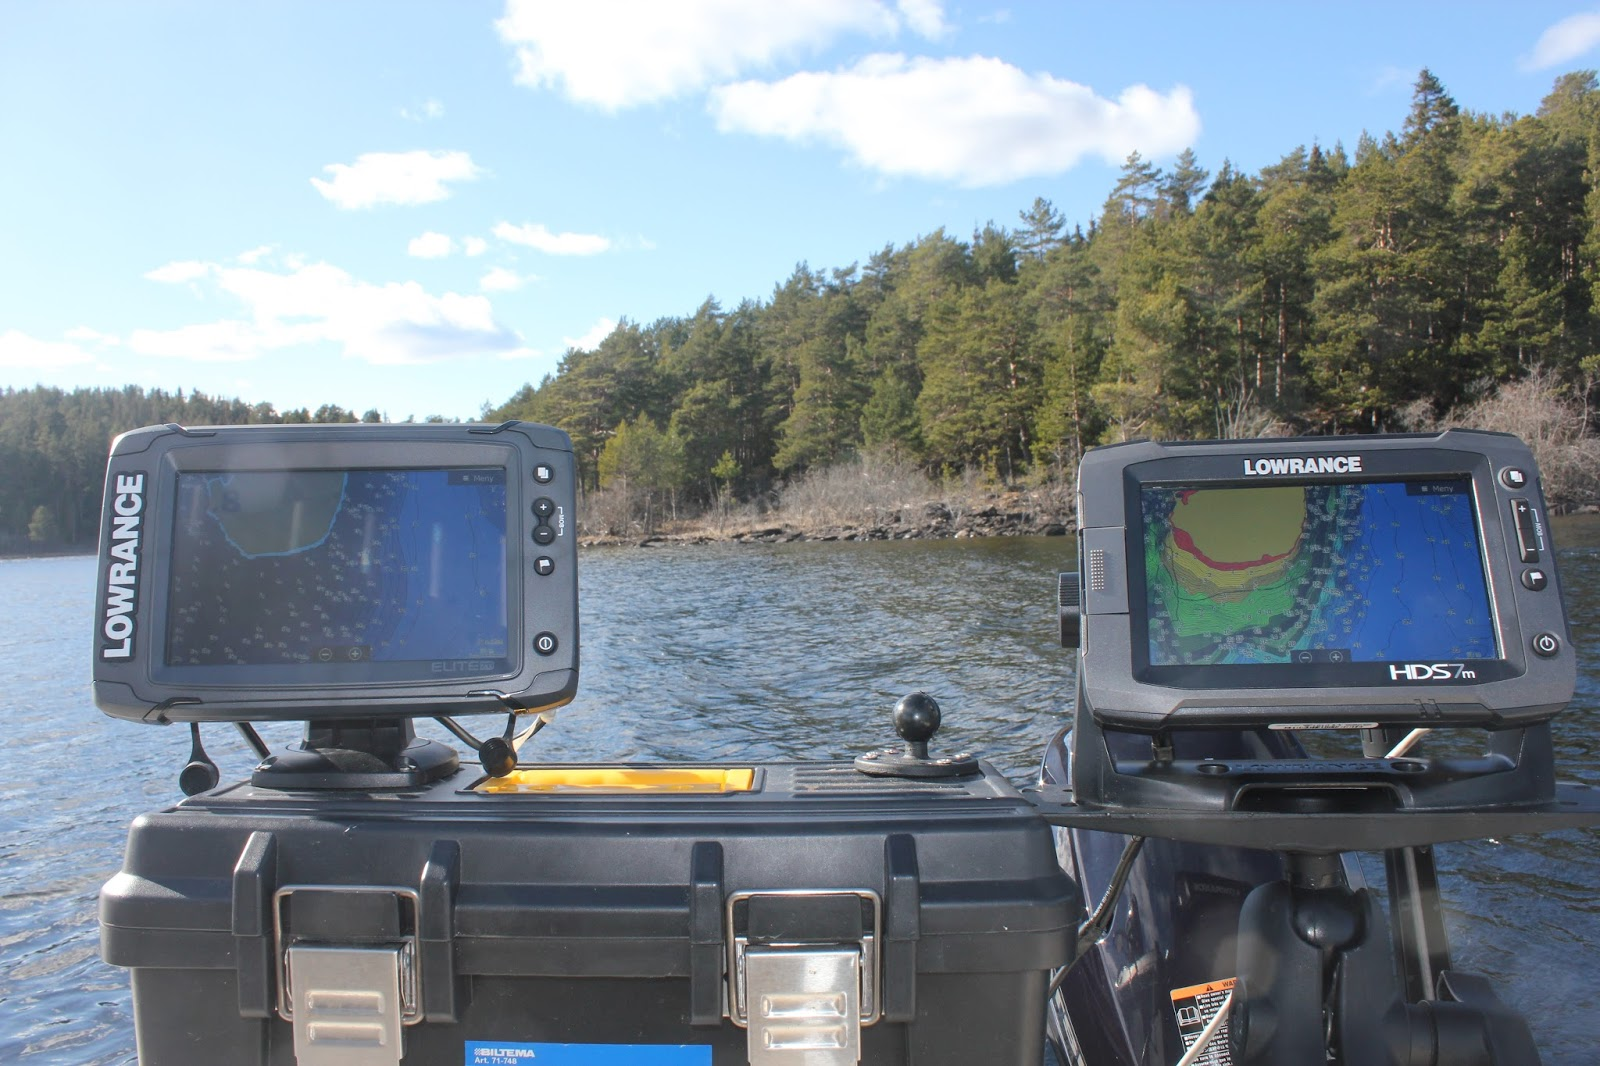 Team Colibri What Is The Difference Between Lowrance Hds And Elite Ti Chirp Wiring Diagram 5